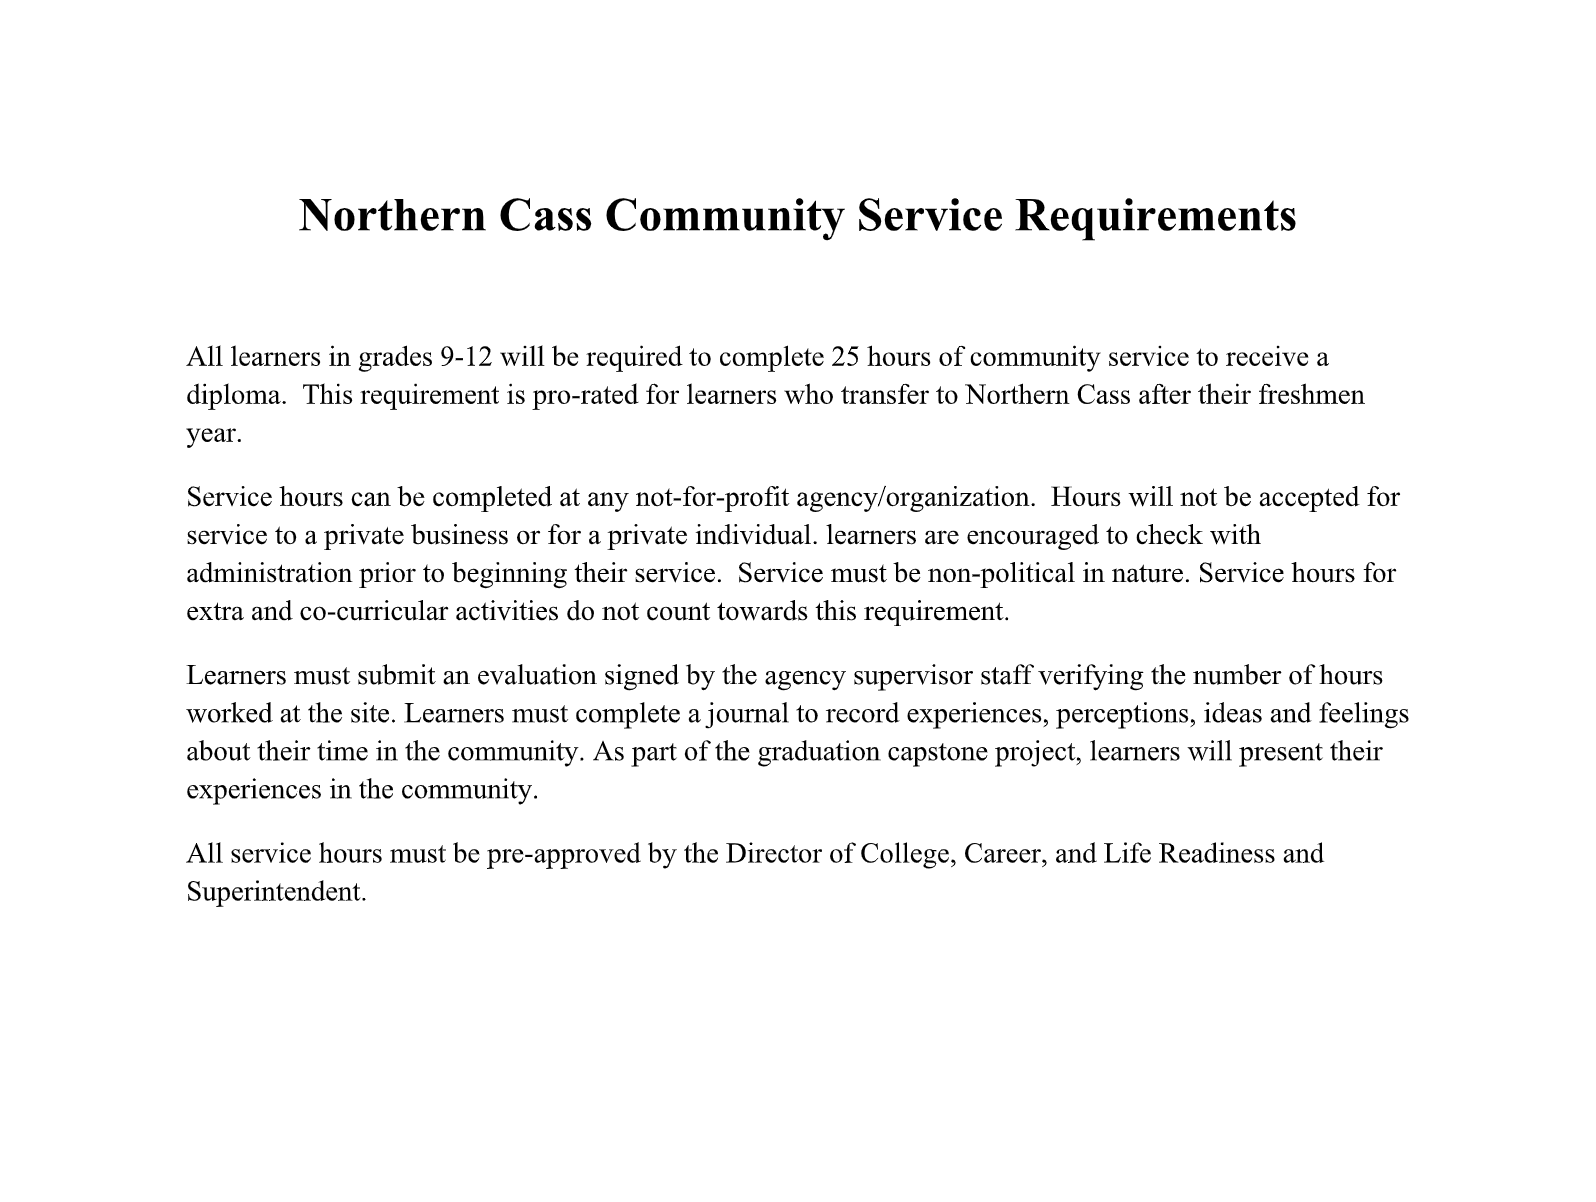 Community service requirements